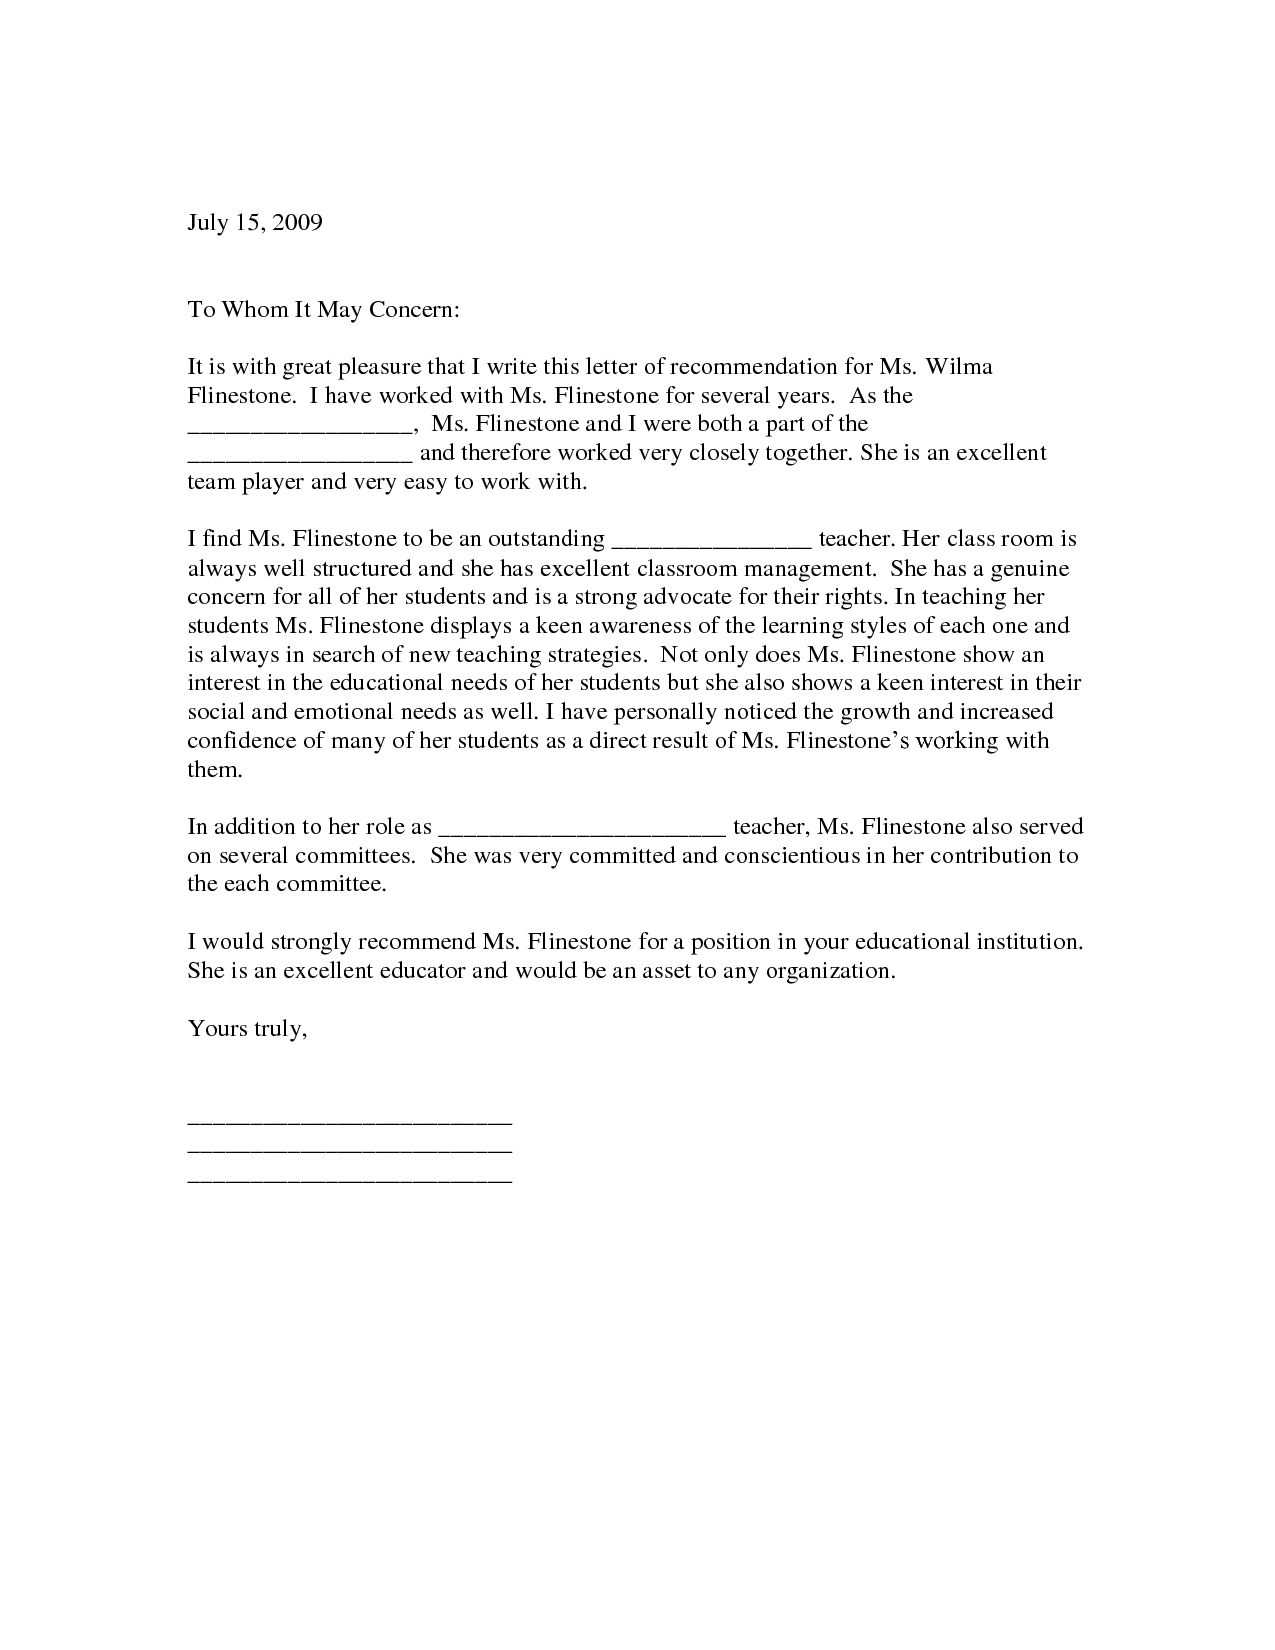 Letter Of Recommendation For Teaching Position Sample Letter Of Recommendation For Teaching Position Letter Of